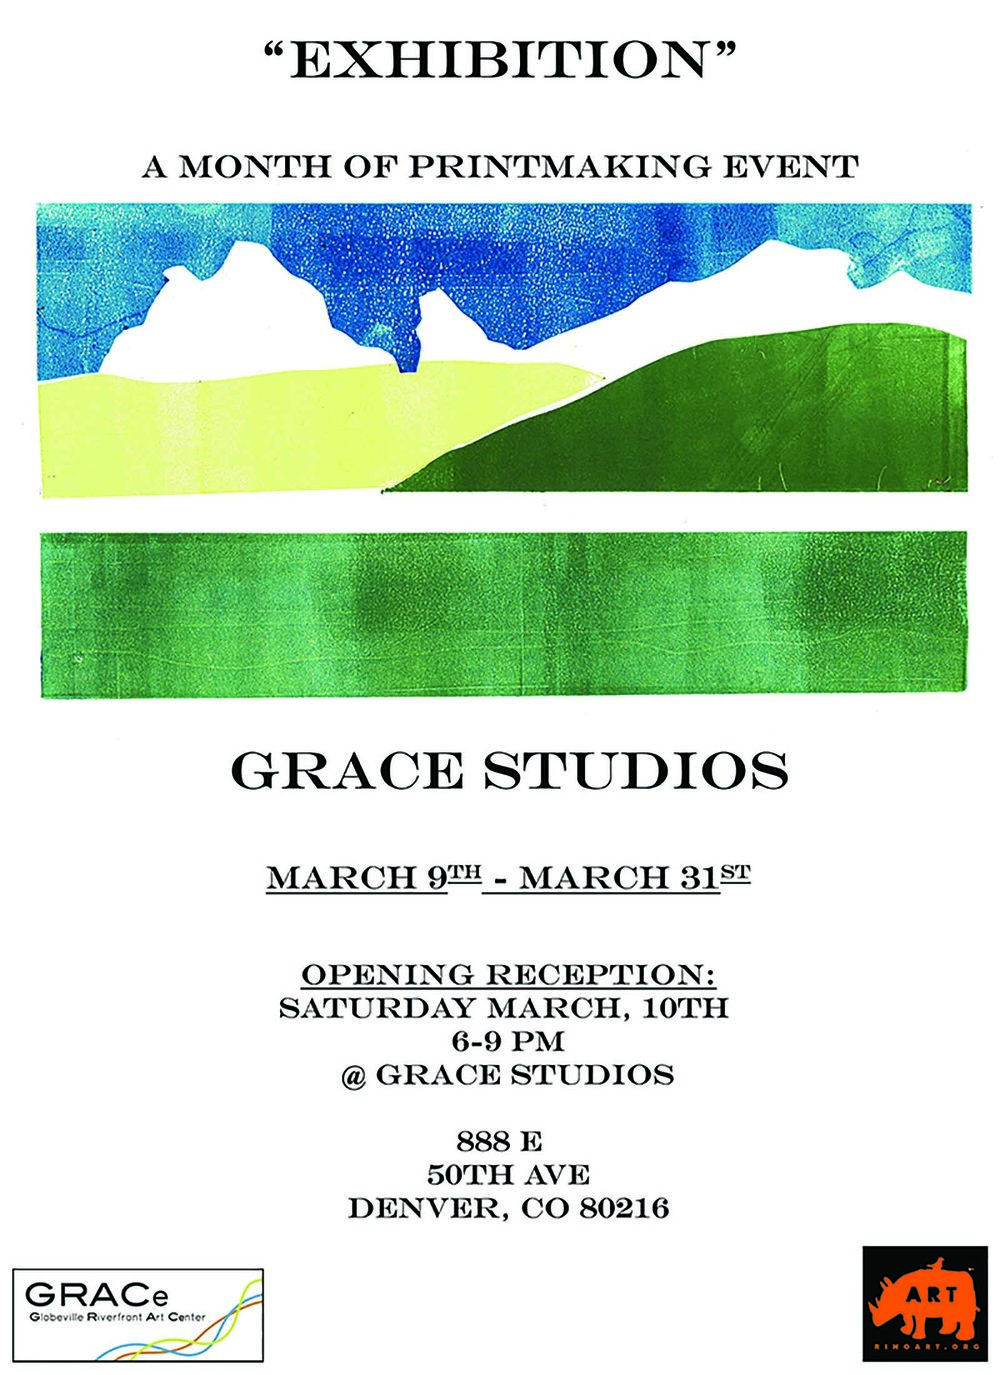 Exhibition - Opening reception: March 10, 20186:00 PM - 9:00 PMGlobeville Riverfront Art Center (GRACe)888 E. 50th Ave., Denver, CO 80216